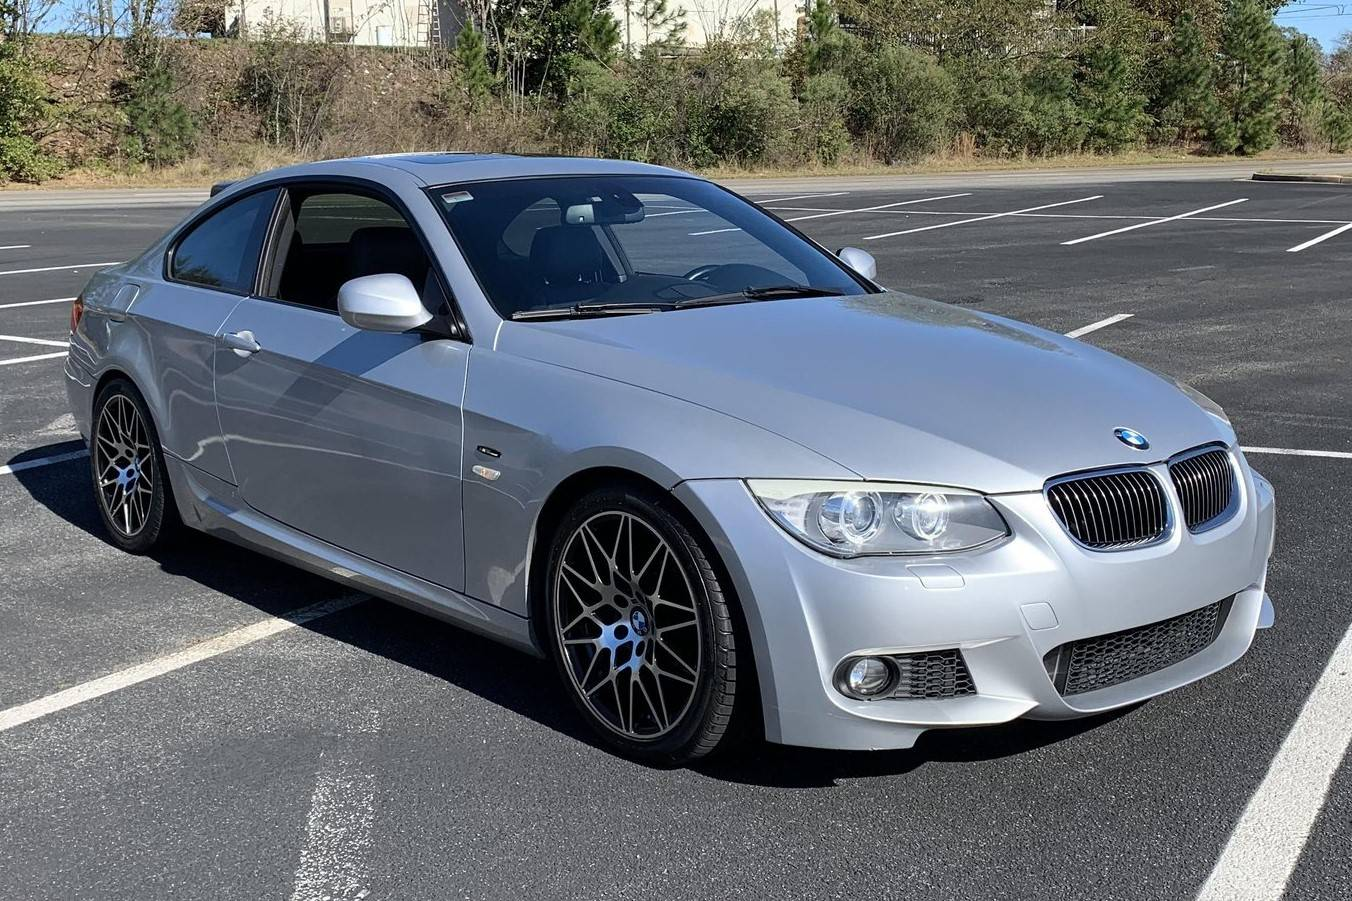 2011 Bmw 328i Coupe Auction Cars Bids